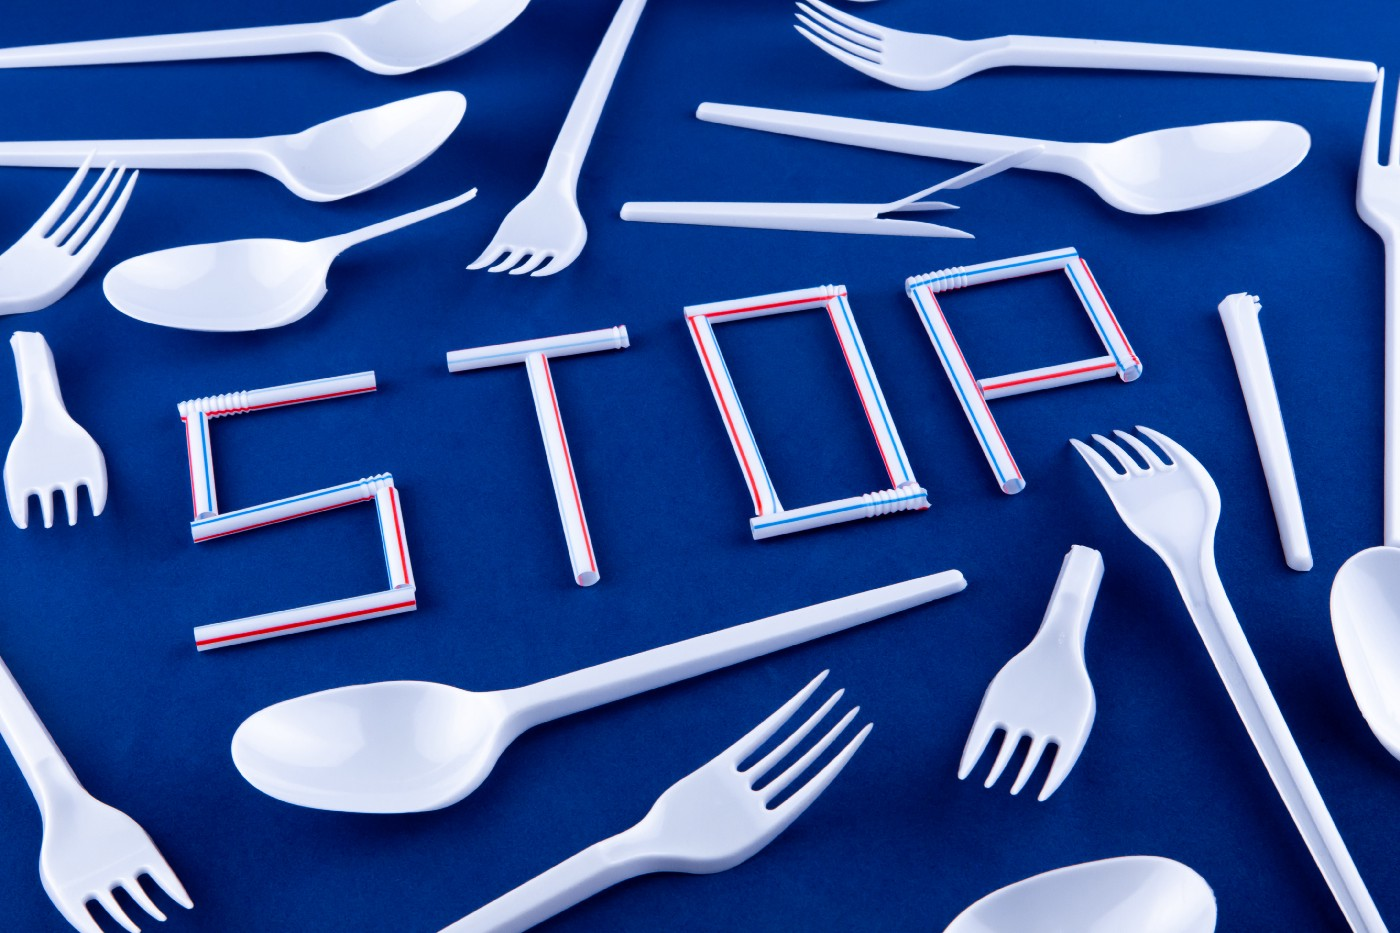 """Bunch of single-use plastics spread out on a blue table, with the word """"STOP"""" made from plastic straws, surrounded by many plastic spoons & forks."""